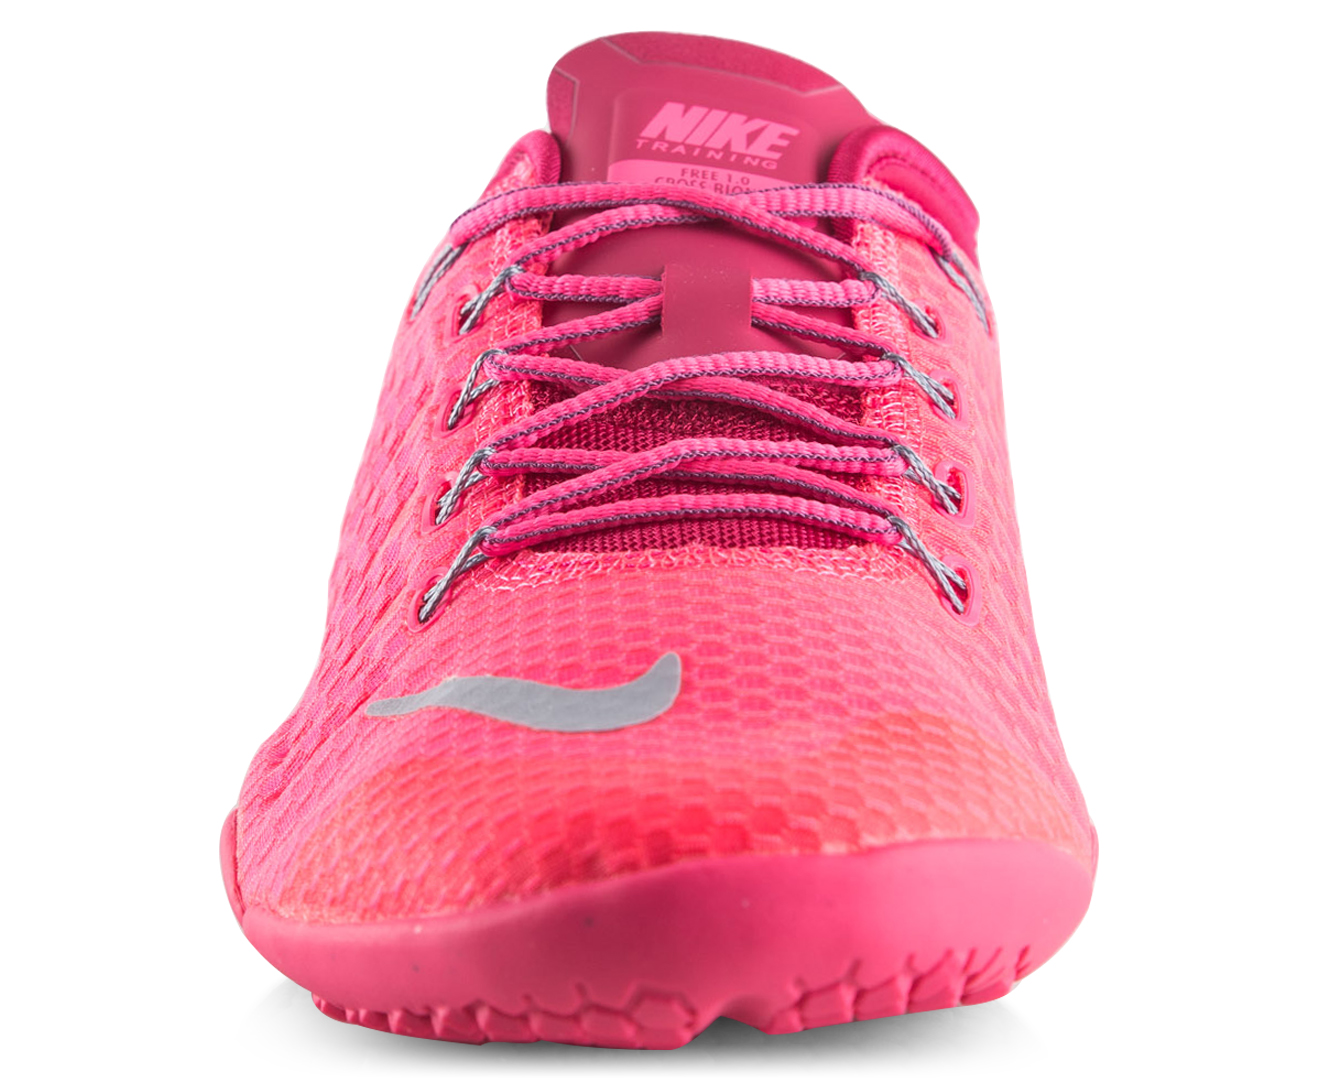 best cheap a637b 23200 Nike Women s Free 1.0 Cross Bionic - Pink   Catch.com.au